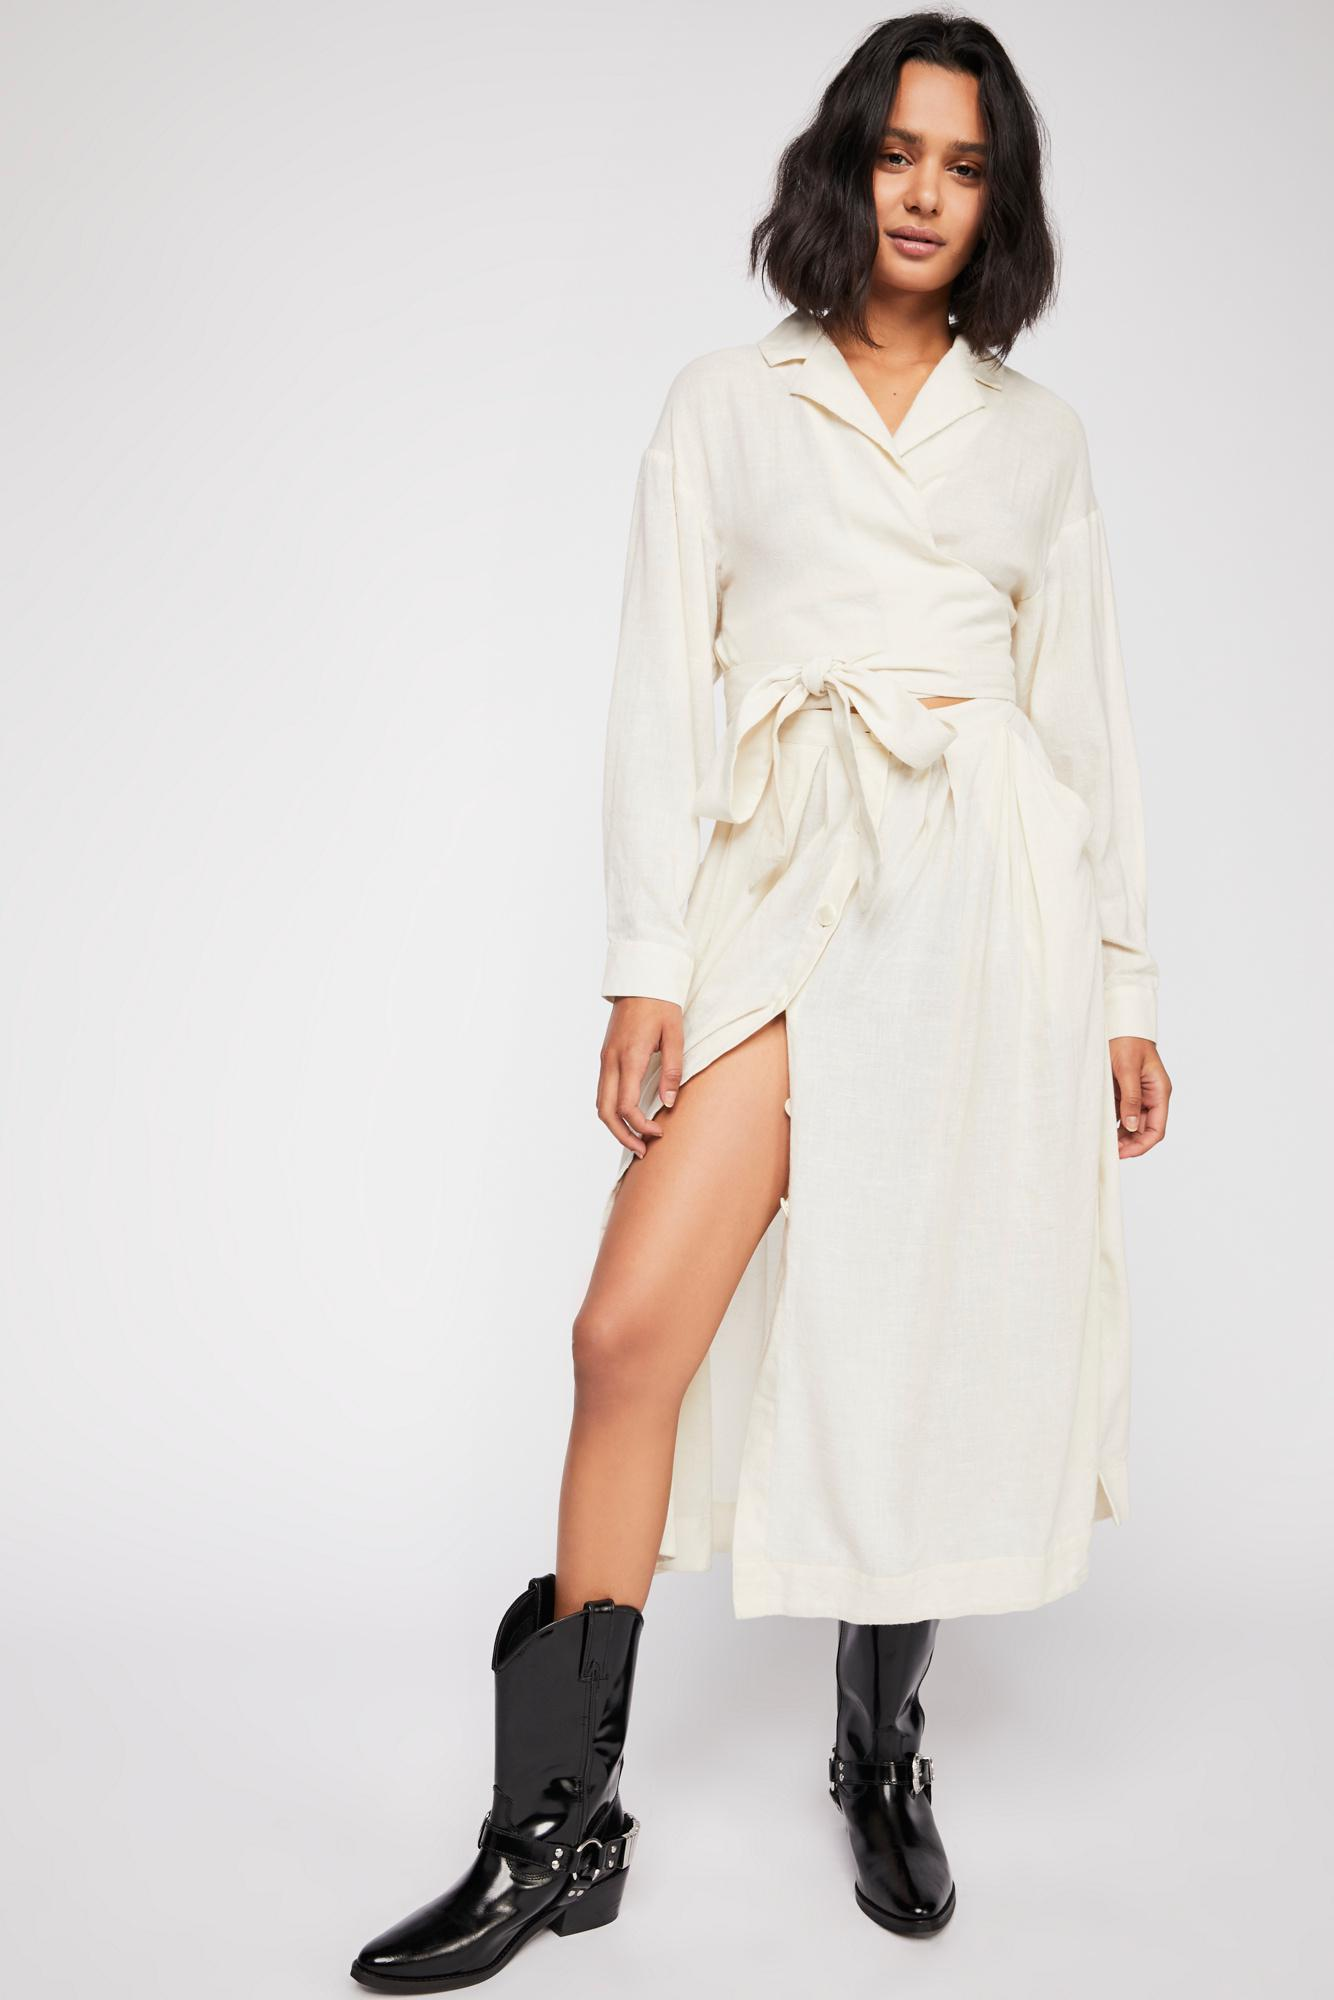 Free People Got Some Sun Midi Dress in White - Lyst 5d5b8b0e8db